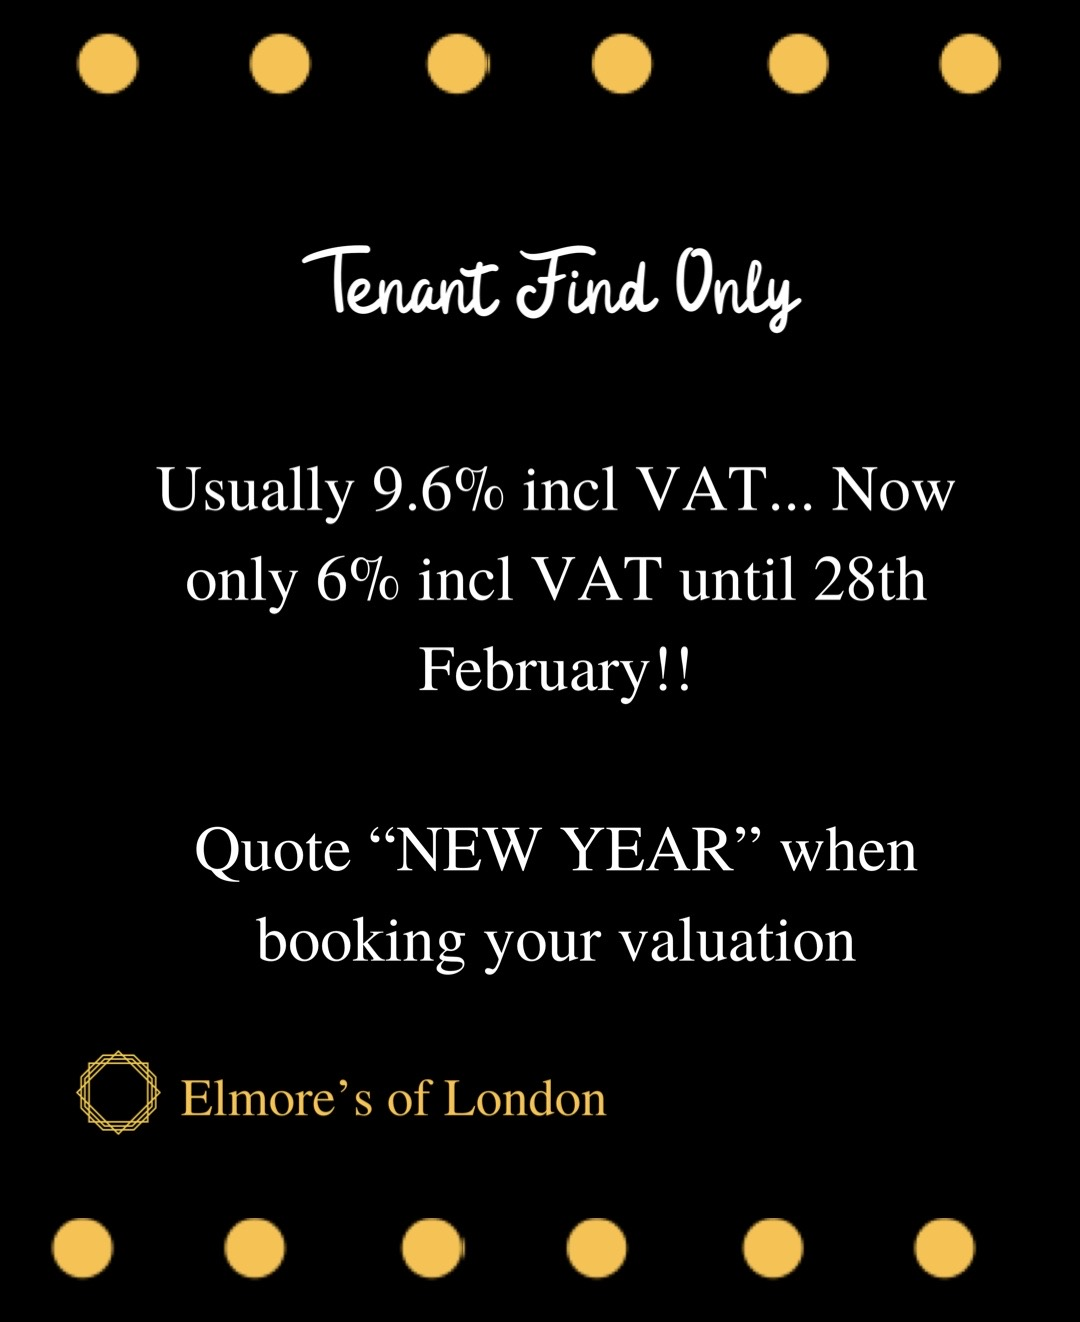 Elmore's of London landlord offers tenant find only